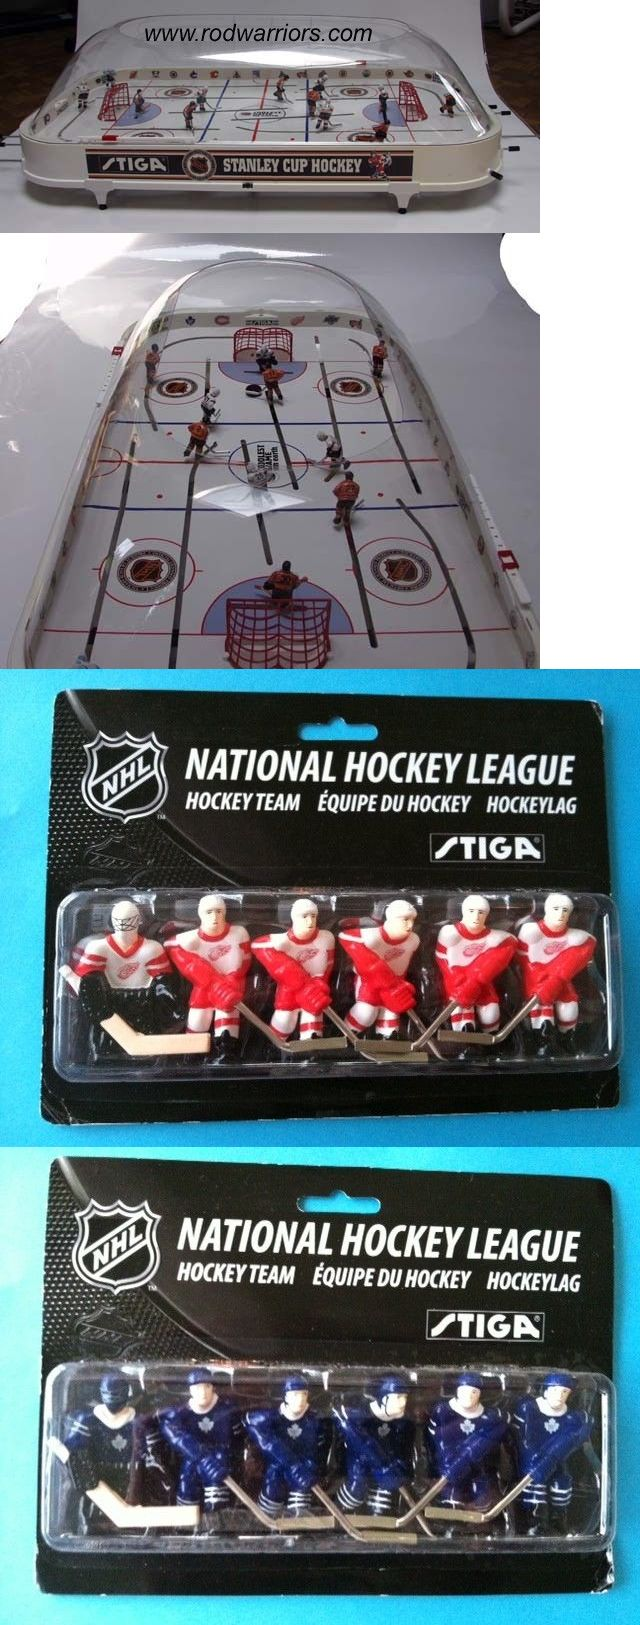 Other Ice and Roller Hockey 2911: 2017 Stiga Bubble Dome Stanley Cup Table Hockey Game 2 Hand-Painted Nhl Teams -> BUY IT NOW ONLY: $189.99 on eBay!